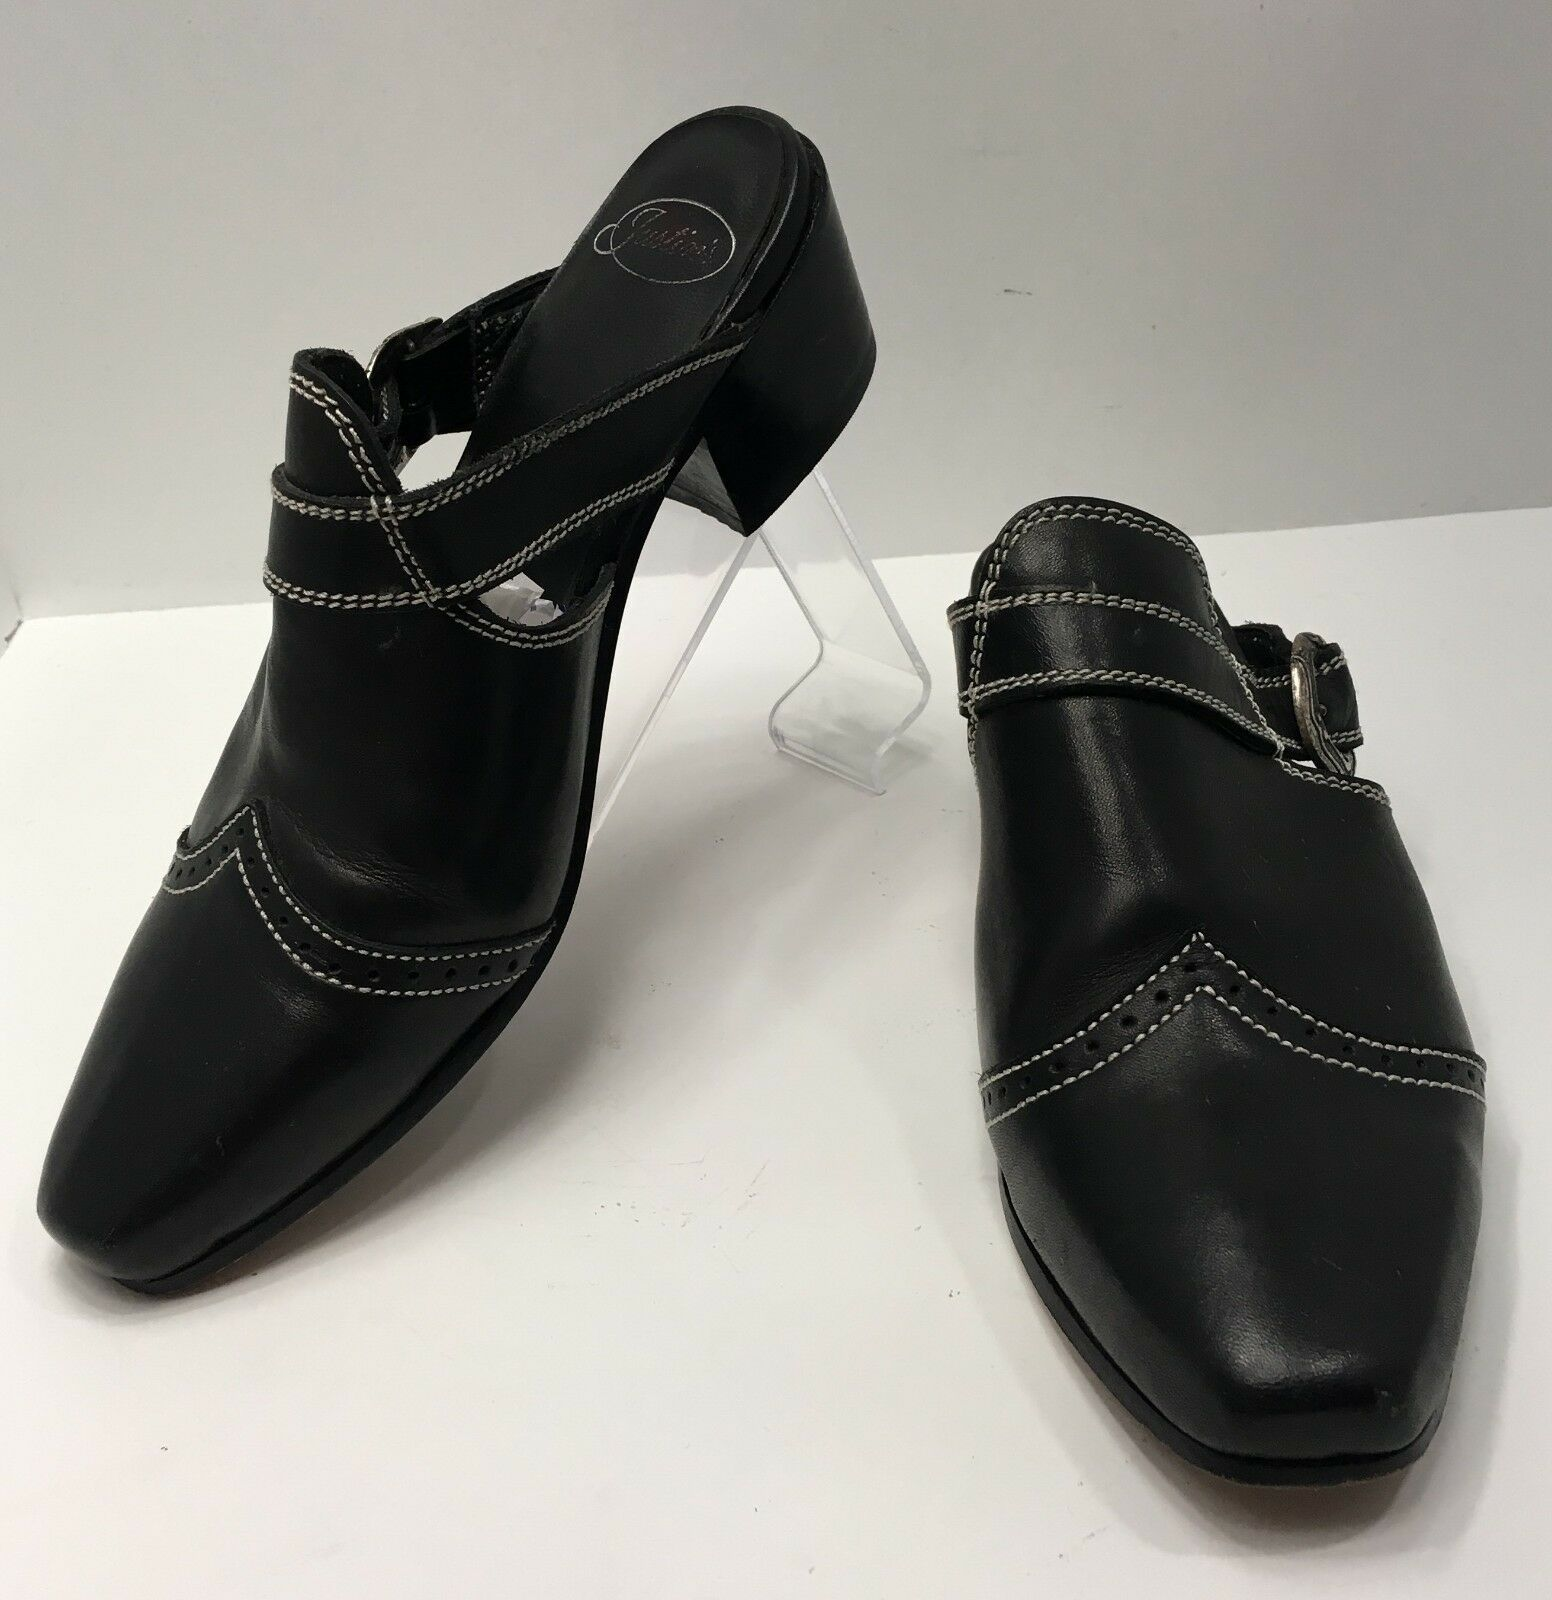 Justins Western 8 M Mules Womens shoes Black Leather Slip On Square Toe Buckle